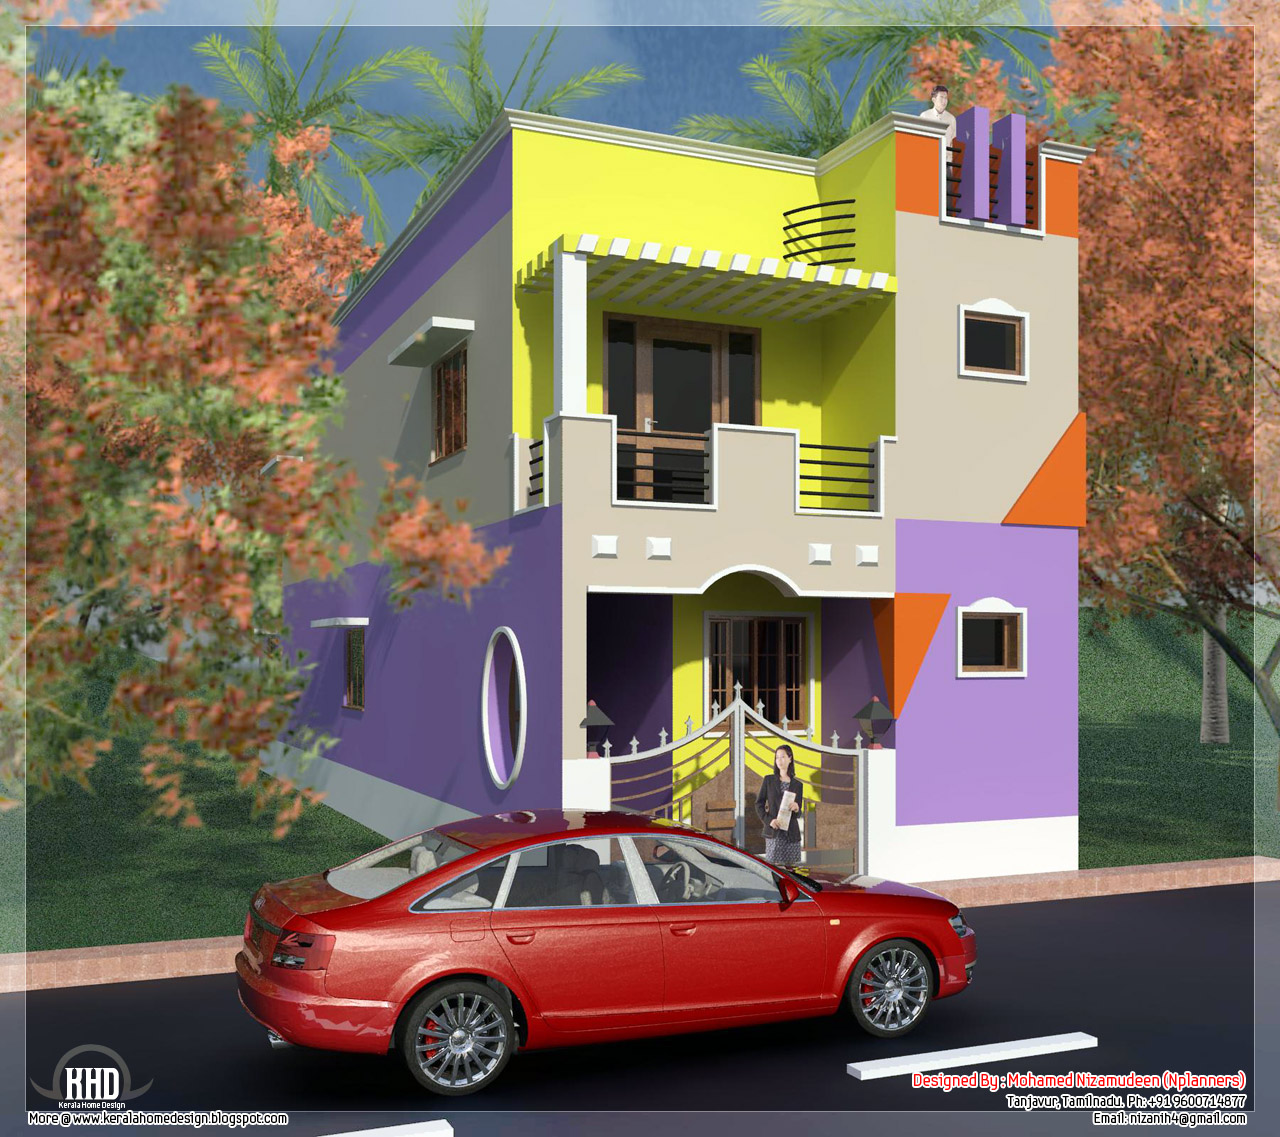 House models in tamil nadu joy studio design gallery for Tamilnadu house designs photos